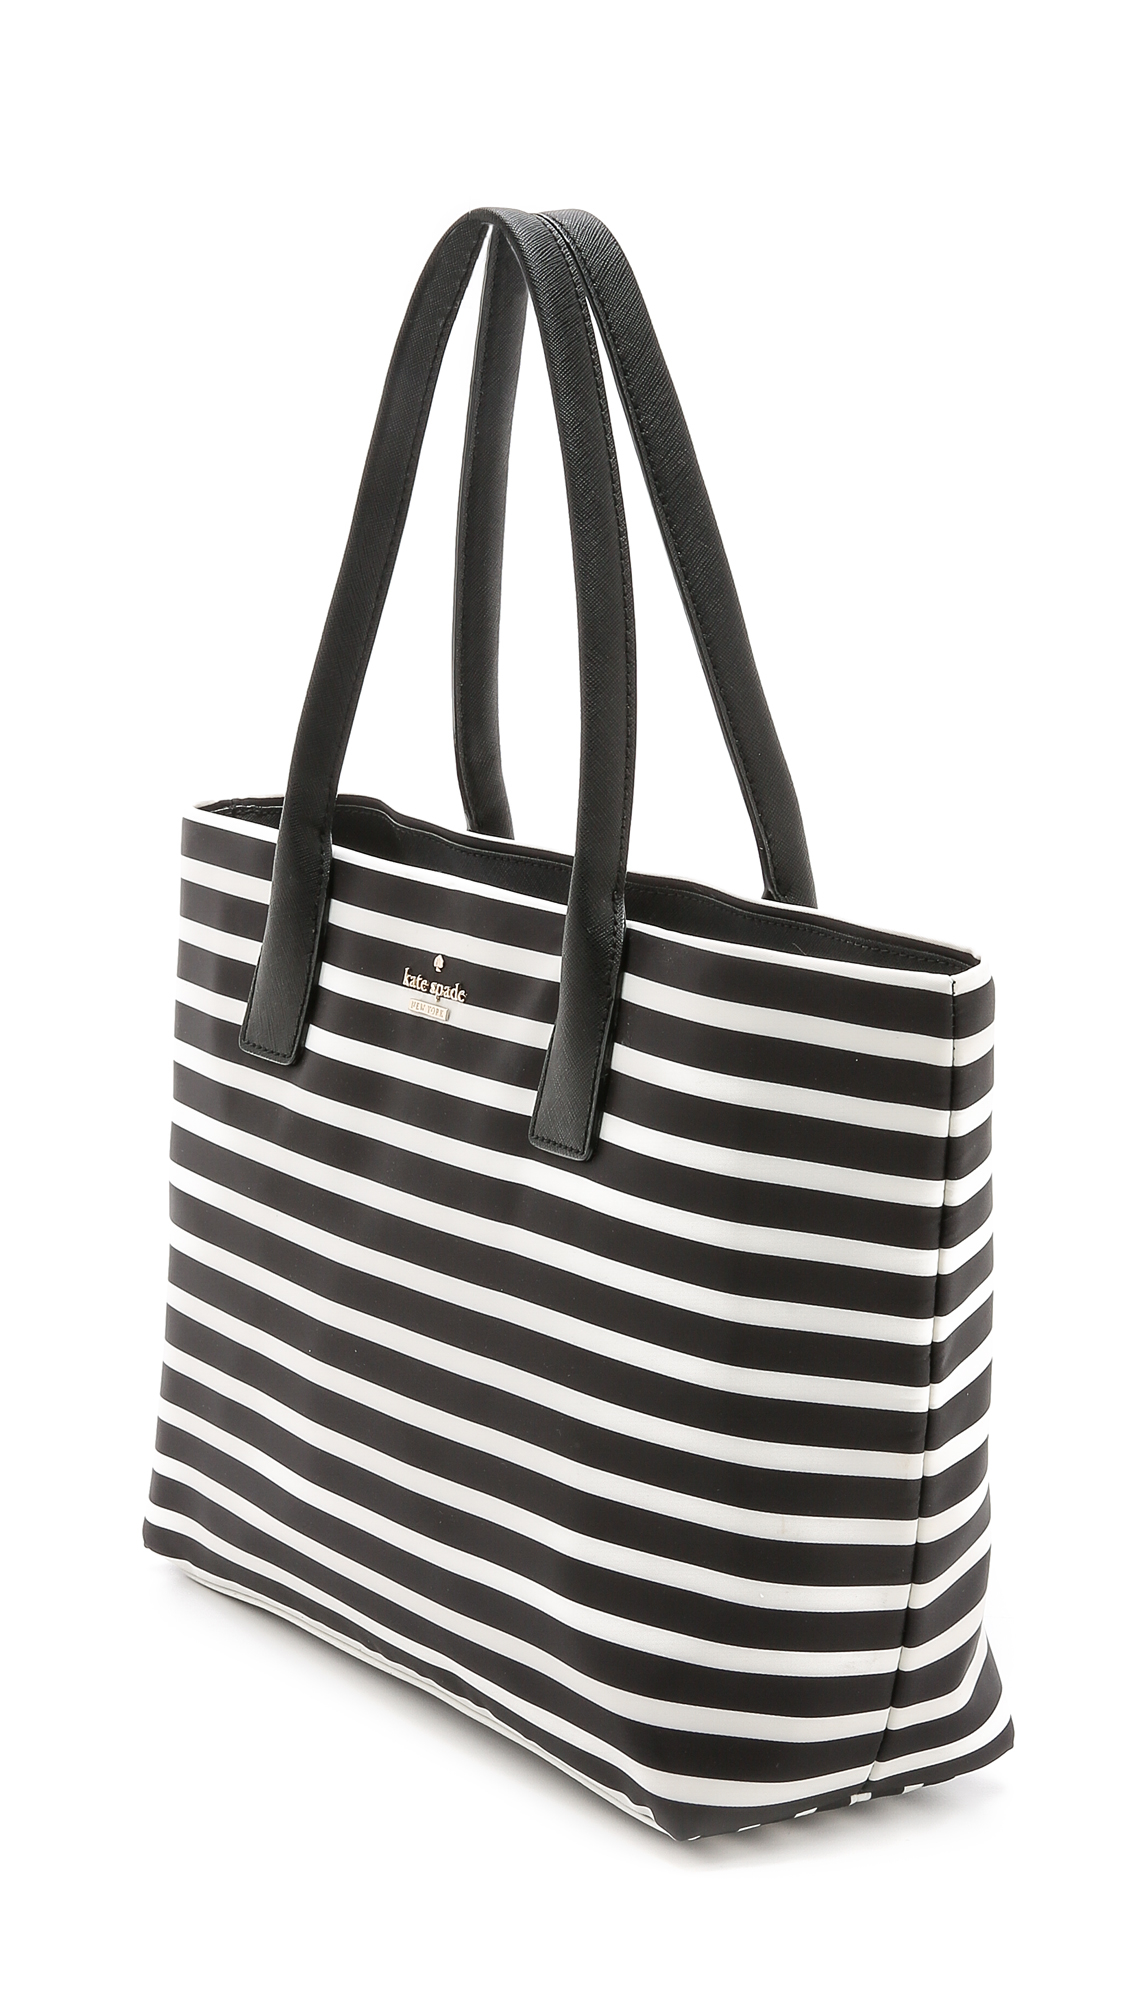 Kate Spade Black And White Striped Purse Best Image Ccdbb